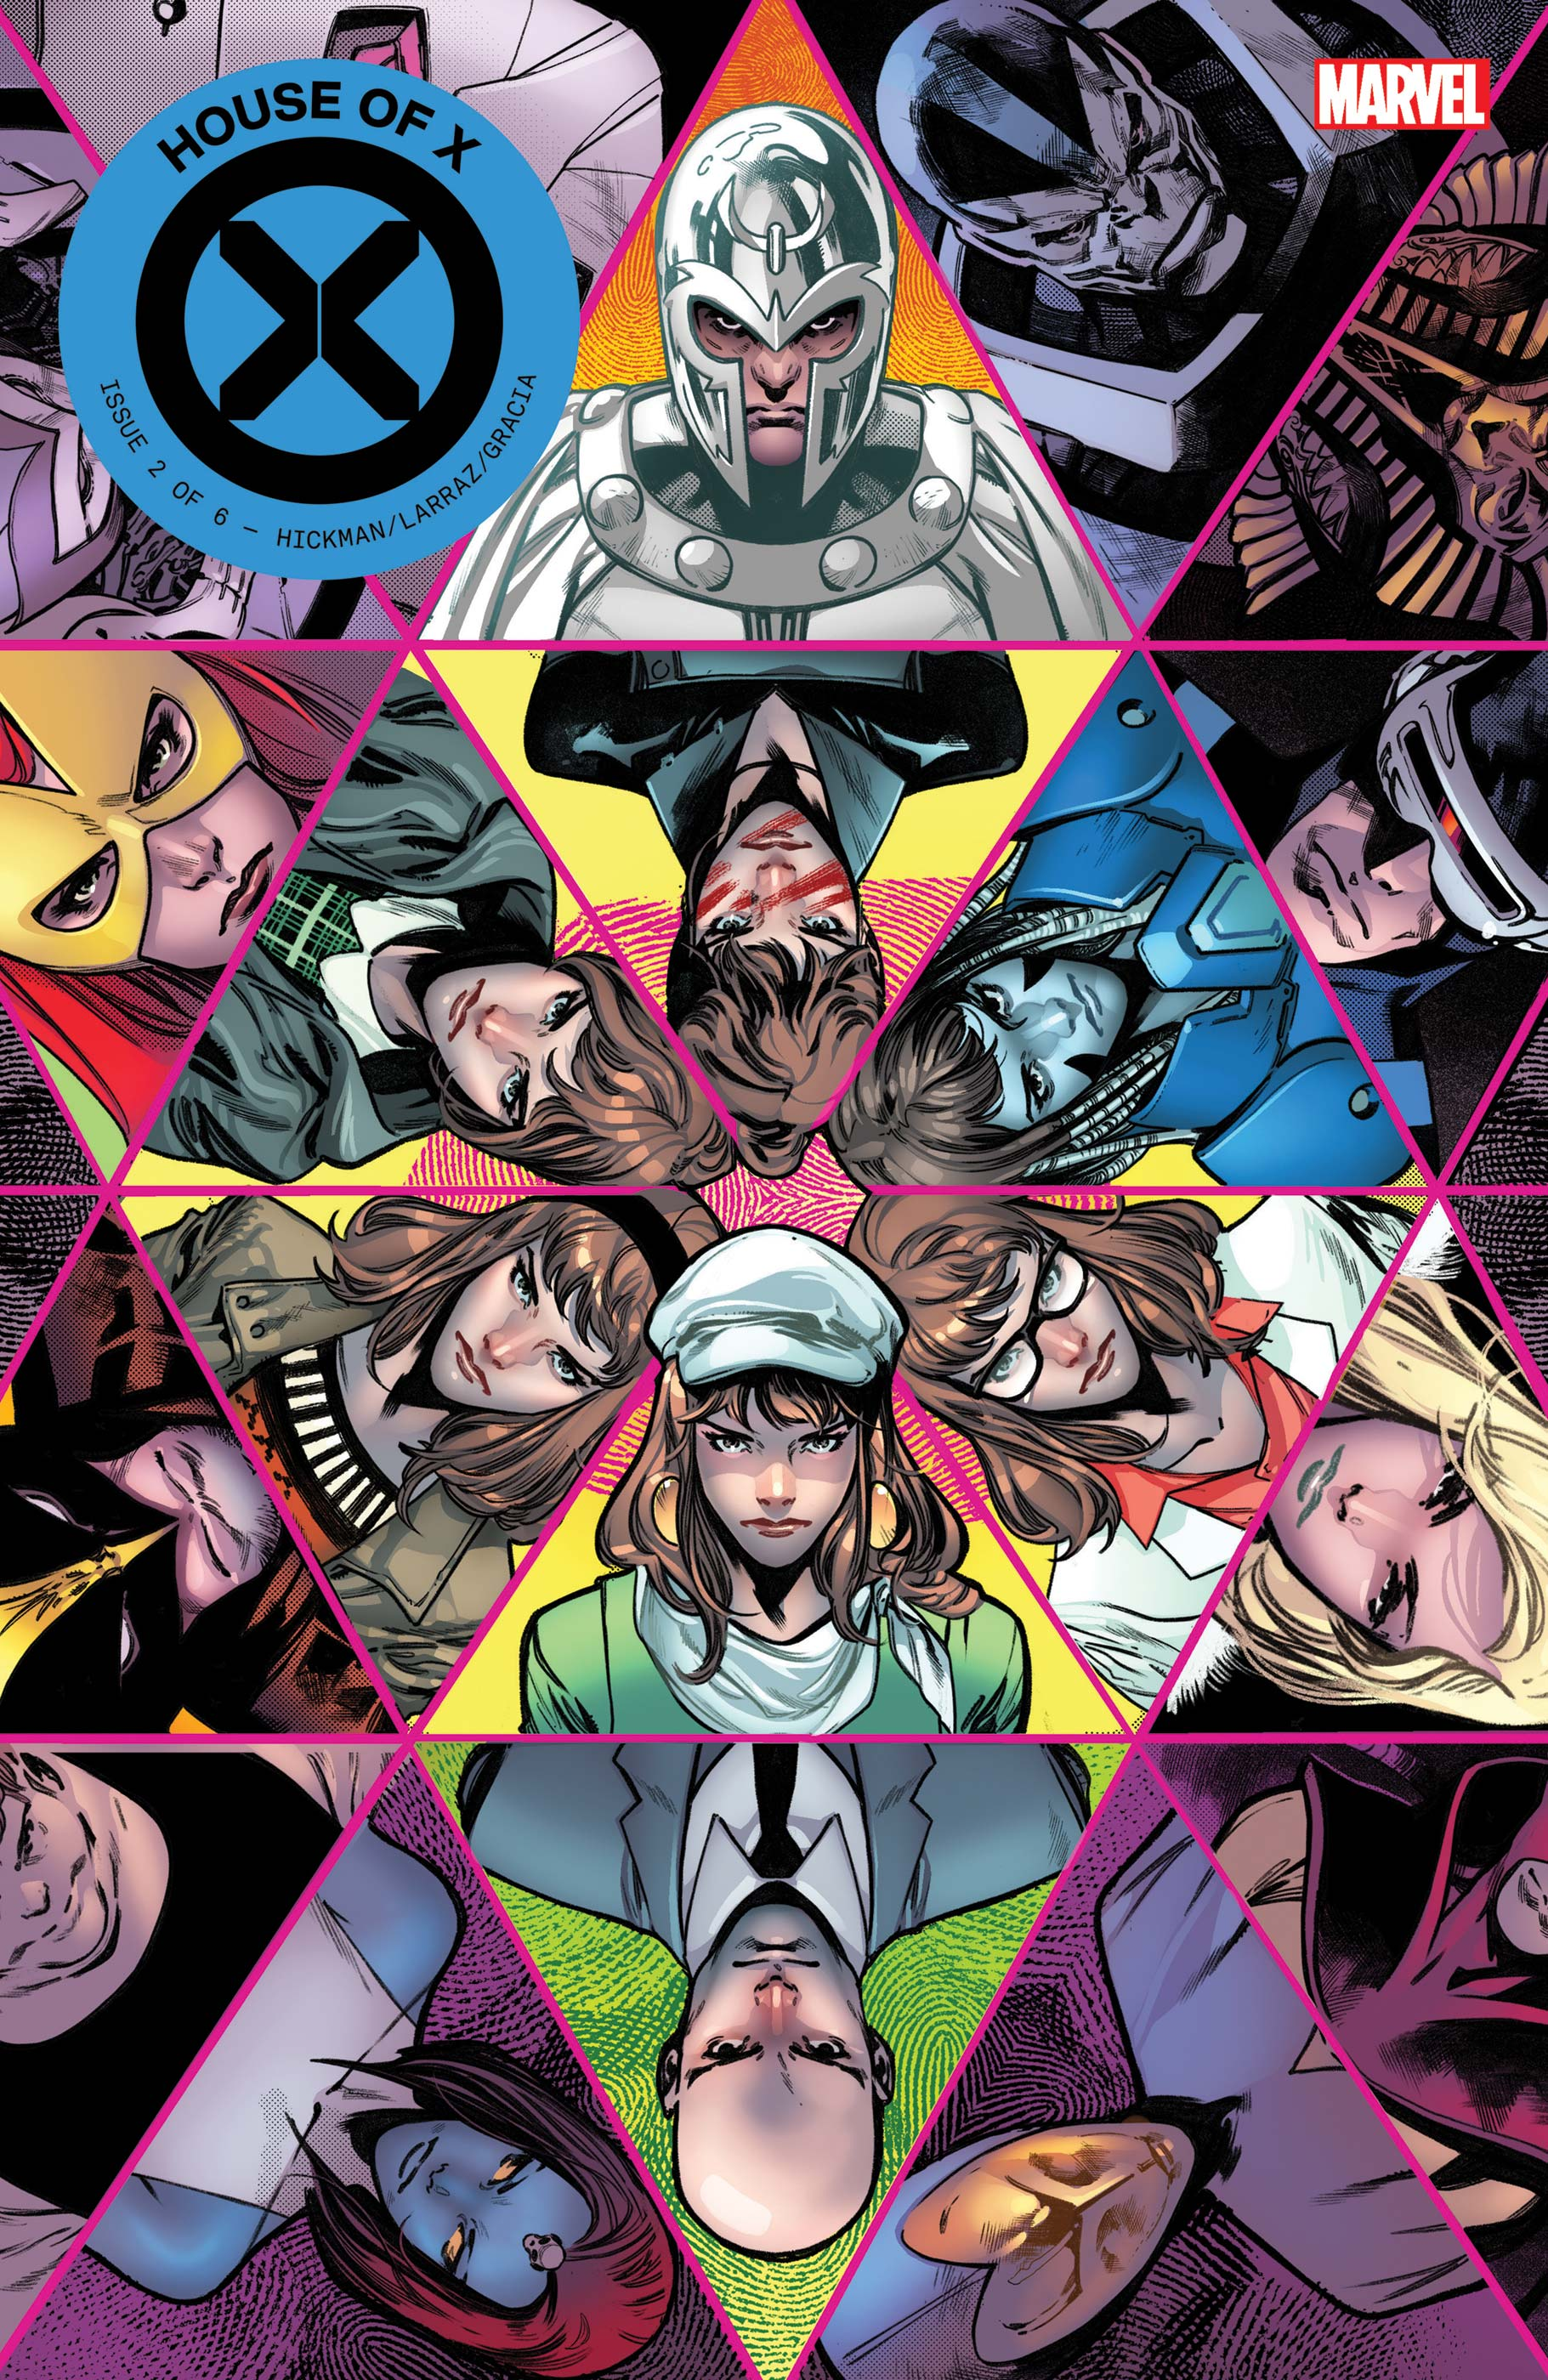 House of X (2019) #2